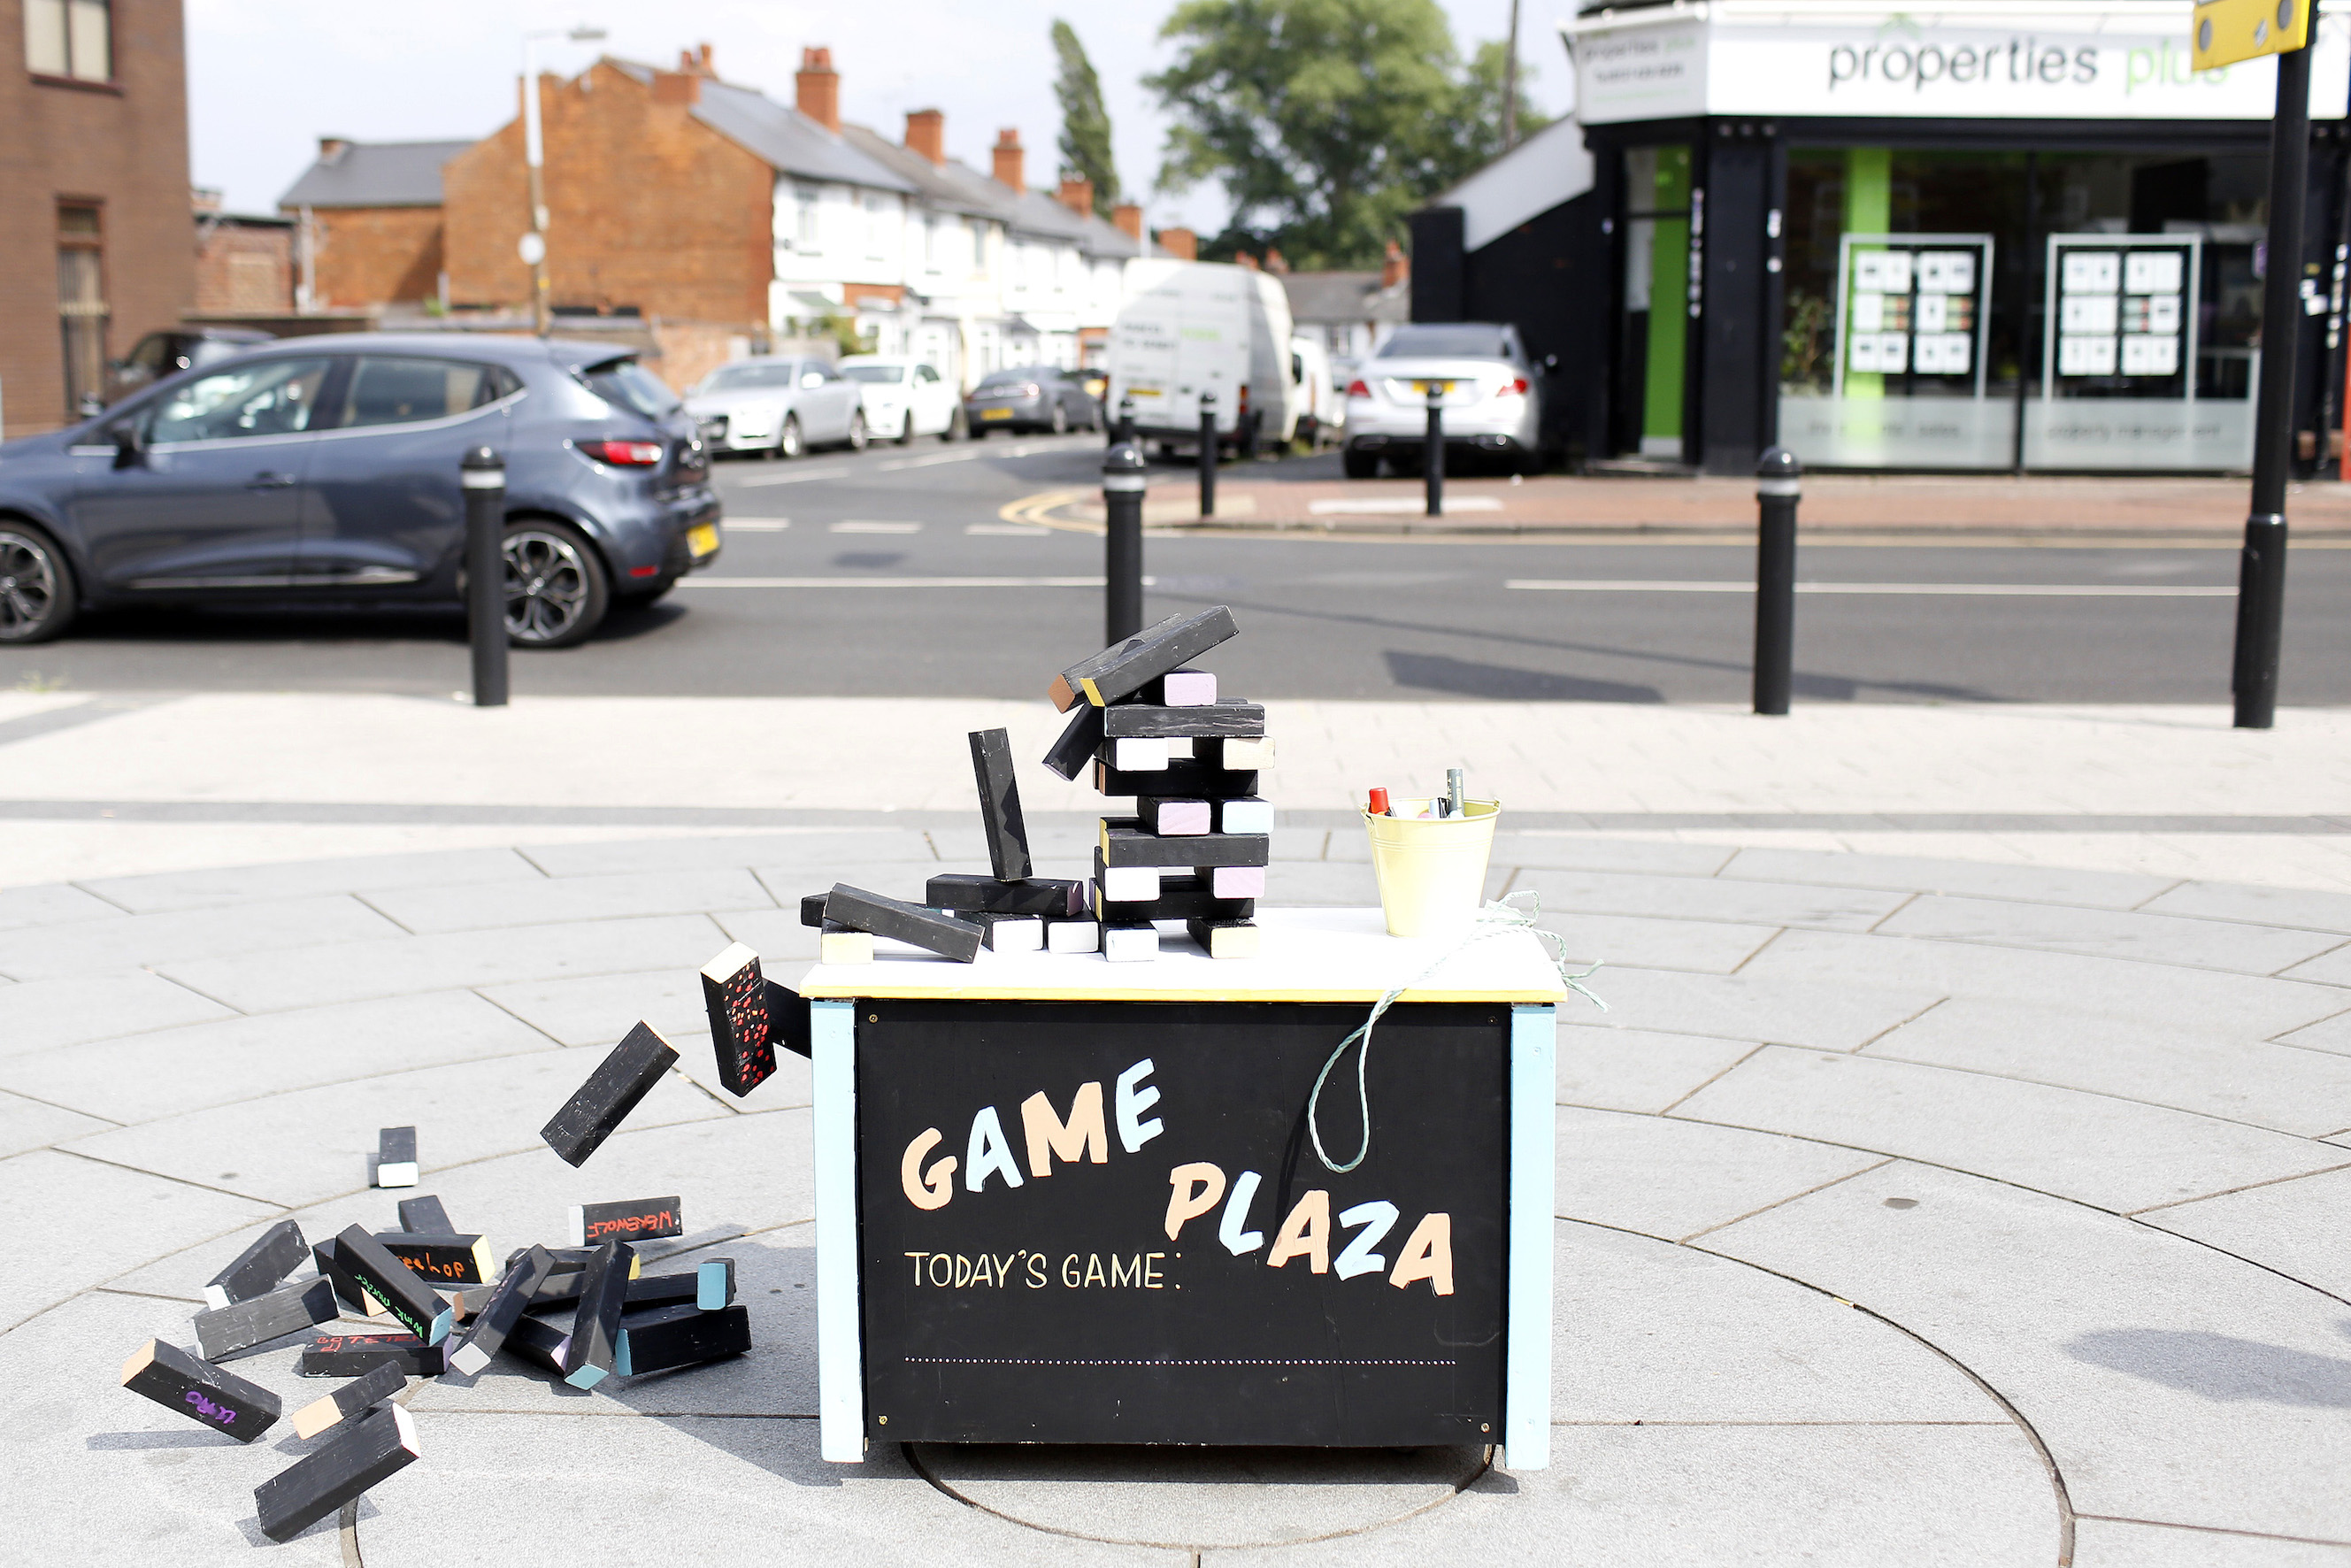 Game Plaza | Anna Horton Cremin | 2018 | Commissioned by Ampersand Projects part of Good Game, Birmingham | image: Stephen Burke